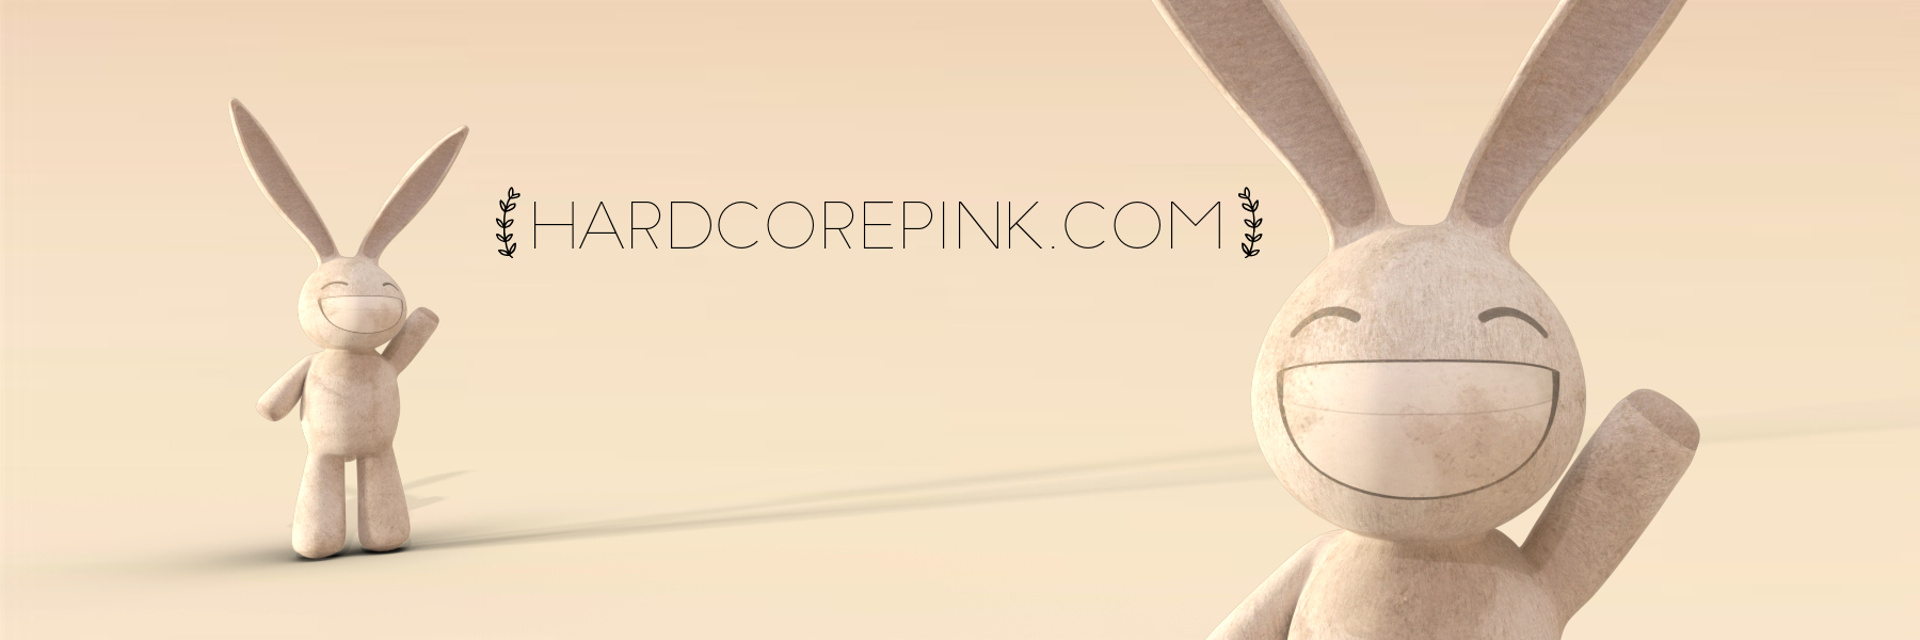 HardcorePink – After School VR - Demo (NSFW)